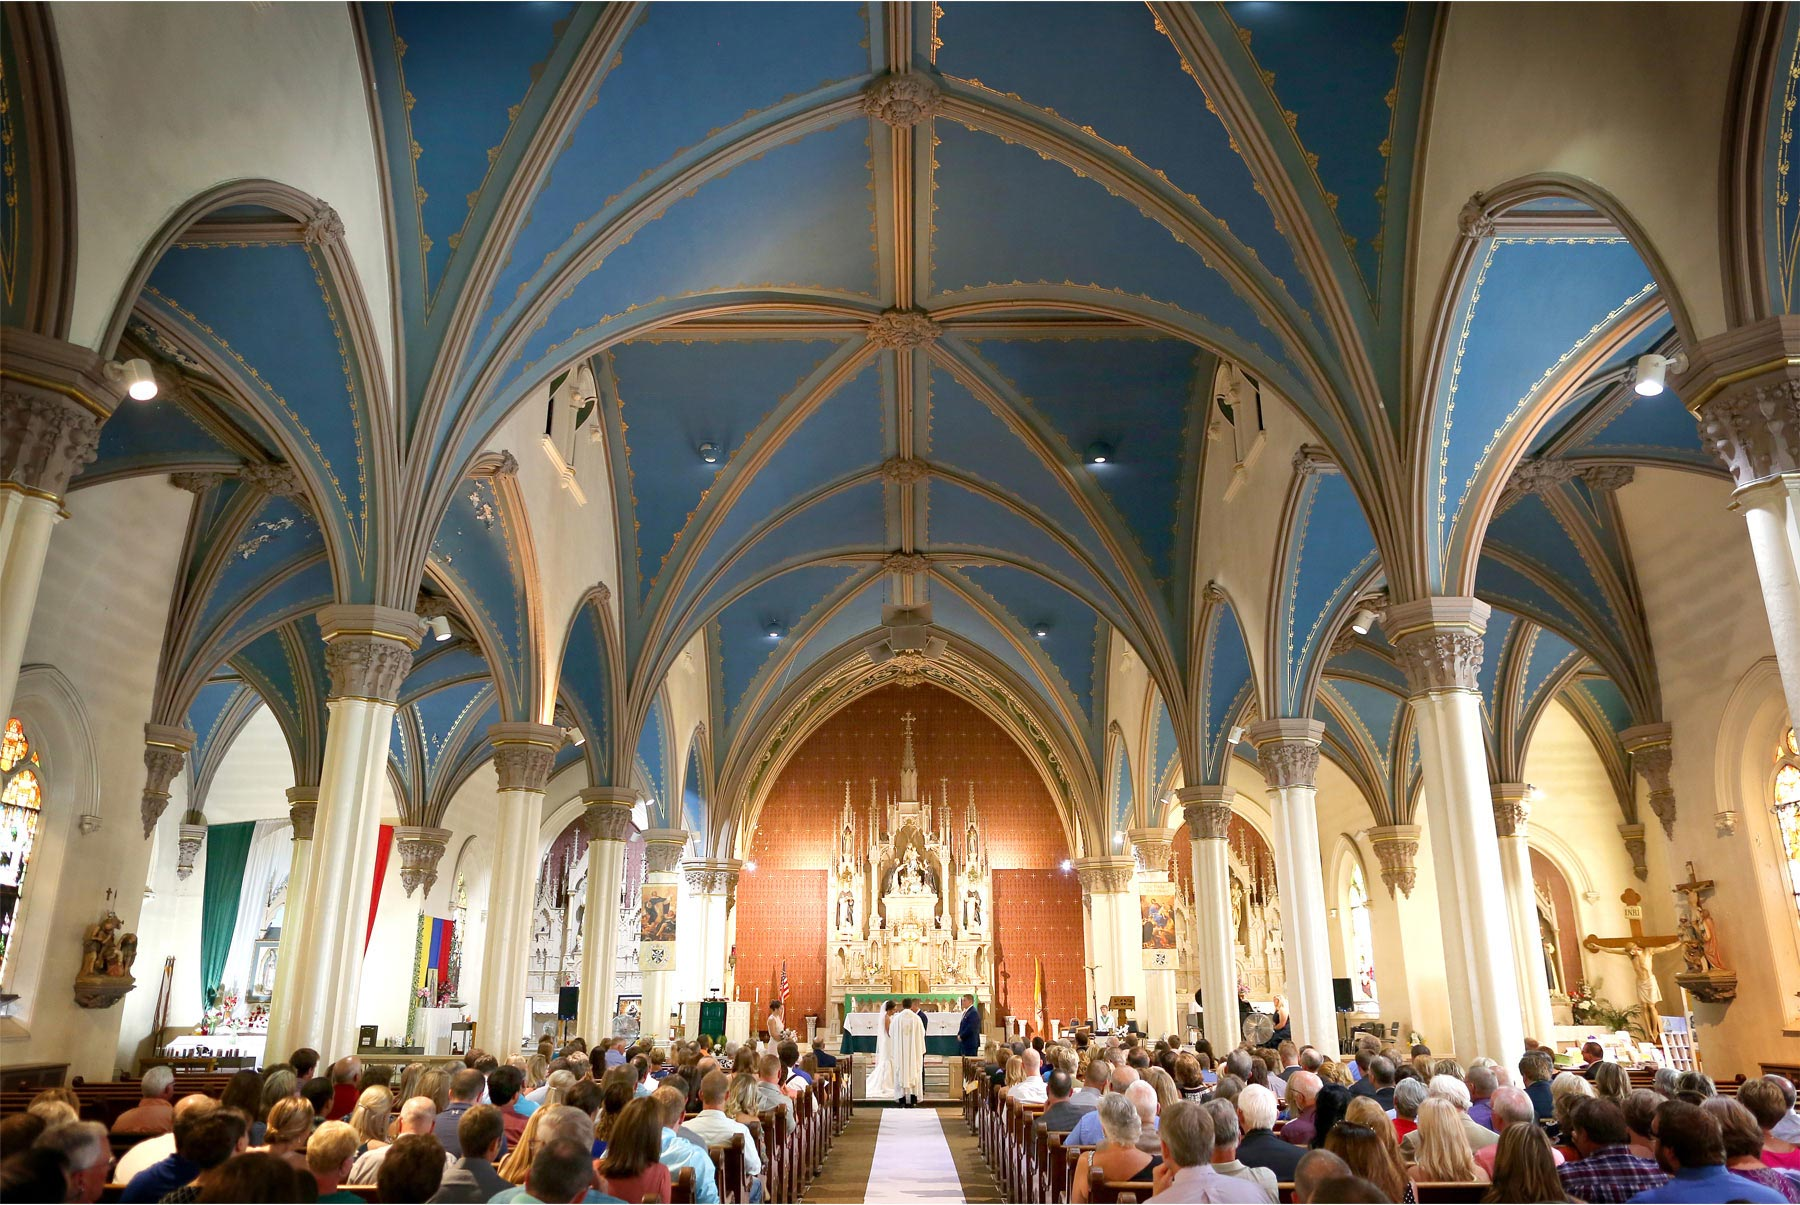 10-Minneapolis-Minnesota-Wedding-Photography-by-Vick-Photography-Holy-Rosary-Church-Ceremony-Brianna-and-Bryce.jpg